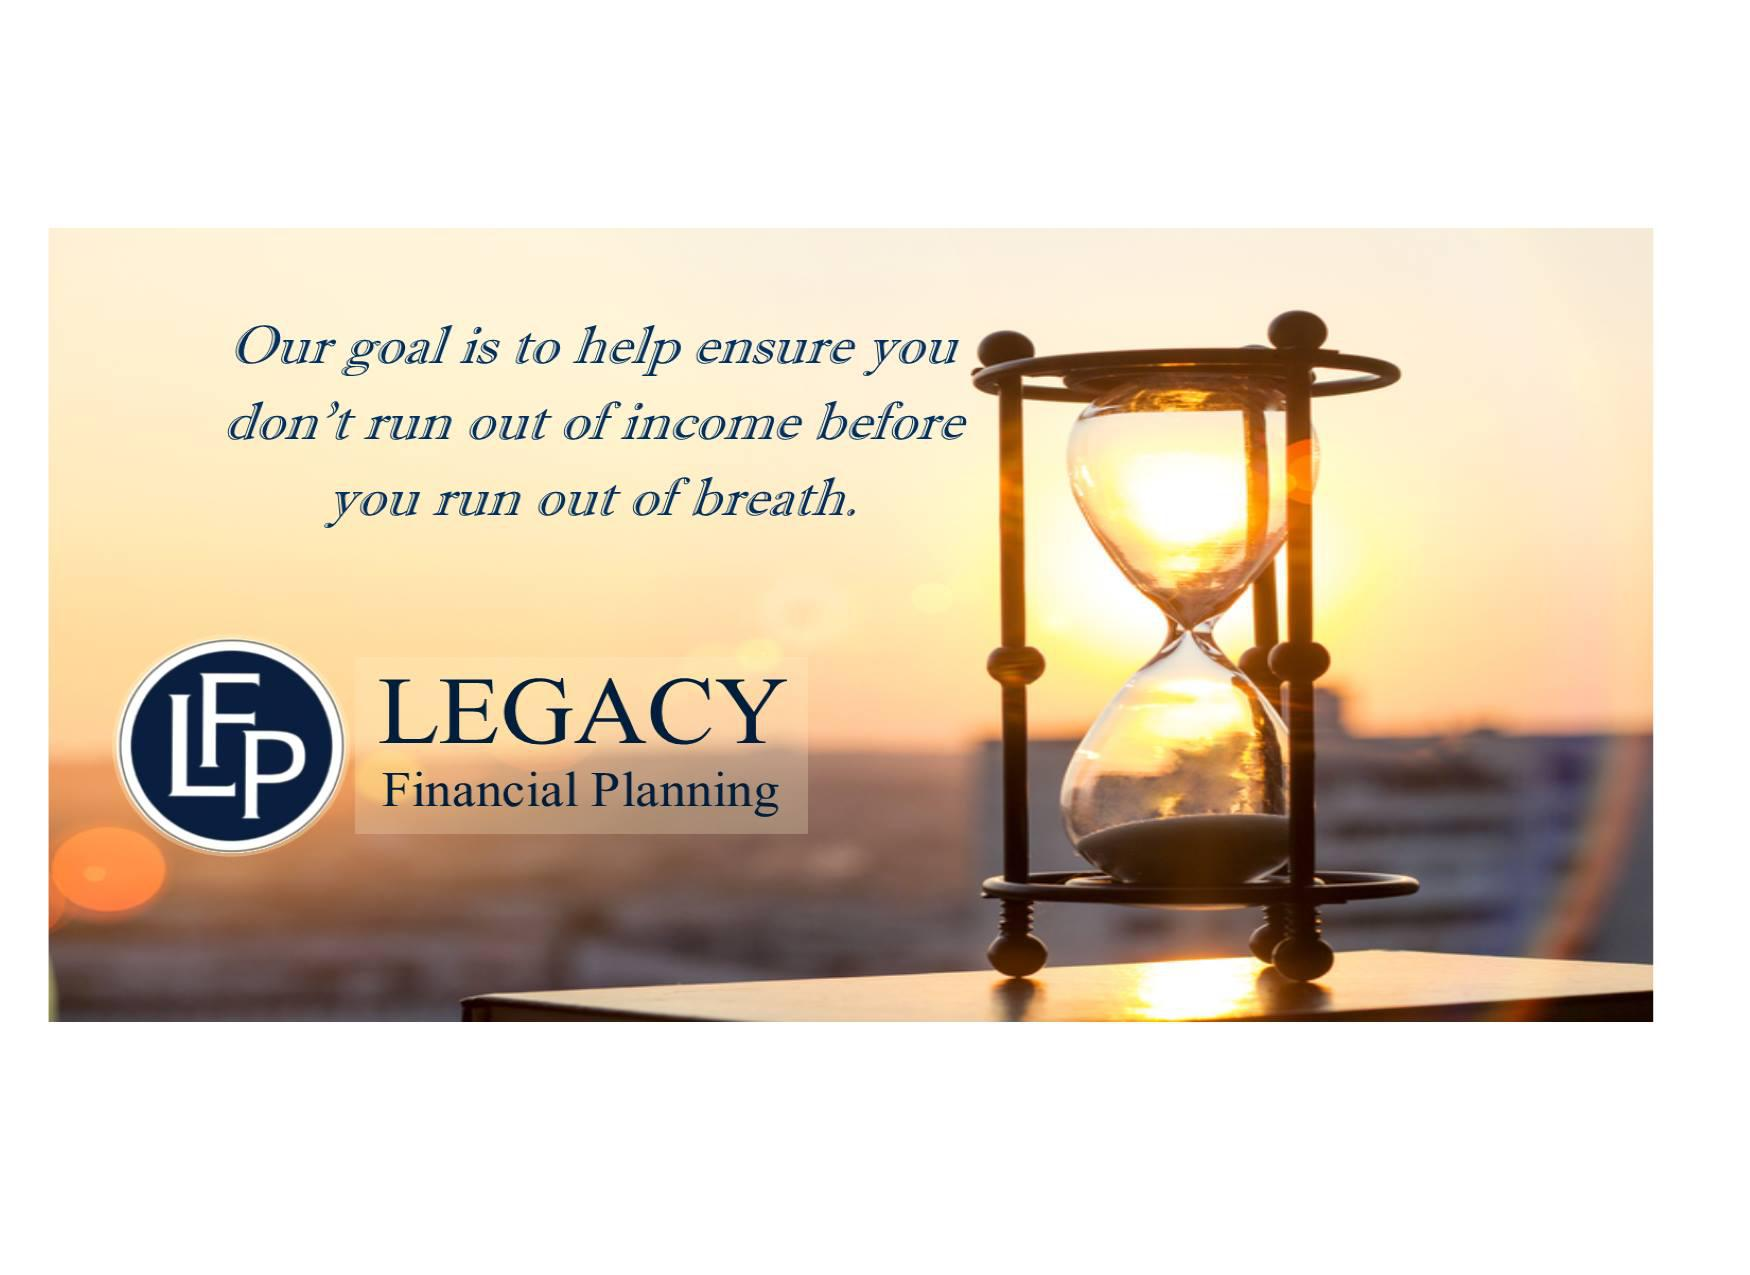 Legacy Financial Planning image 2